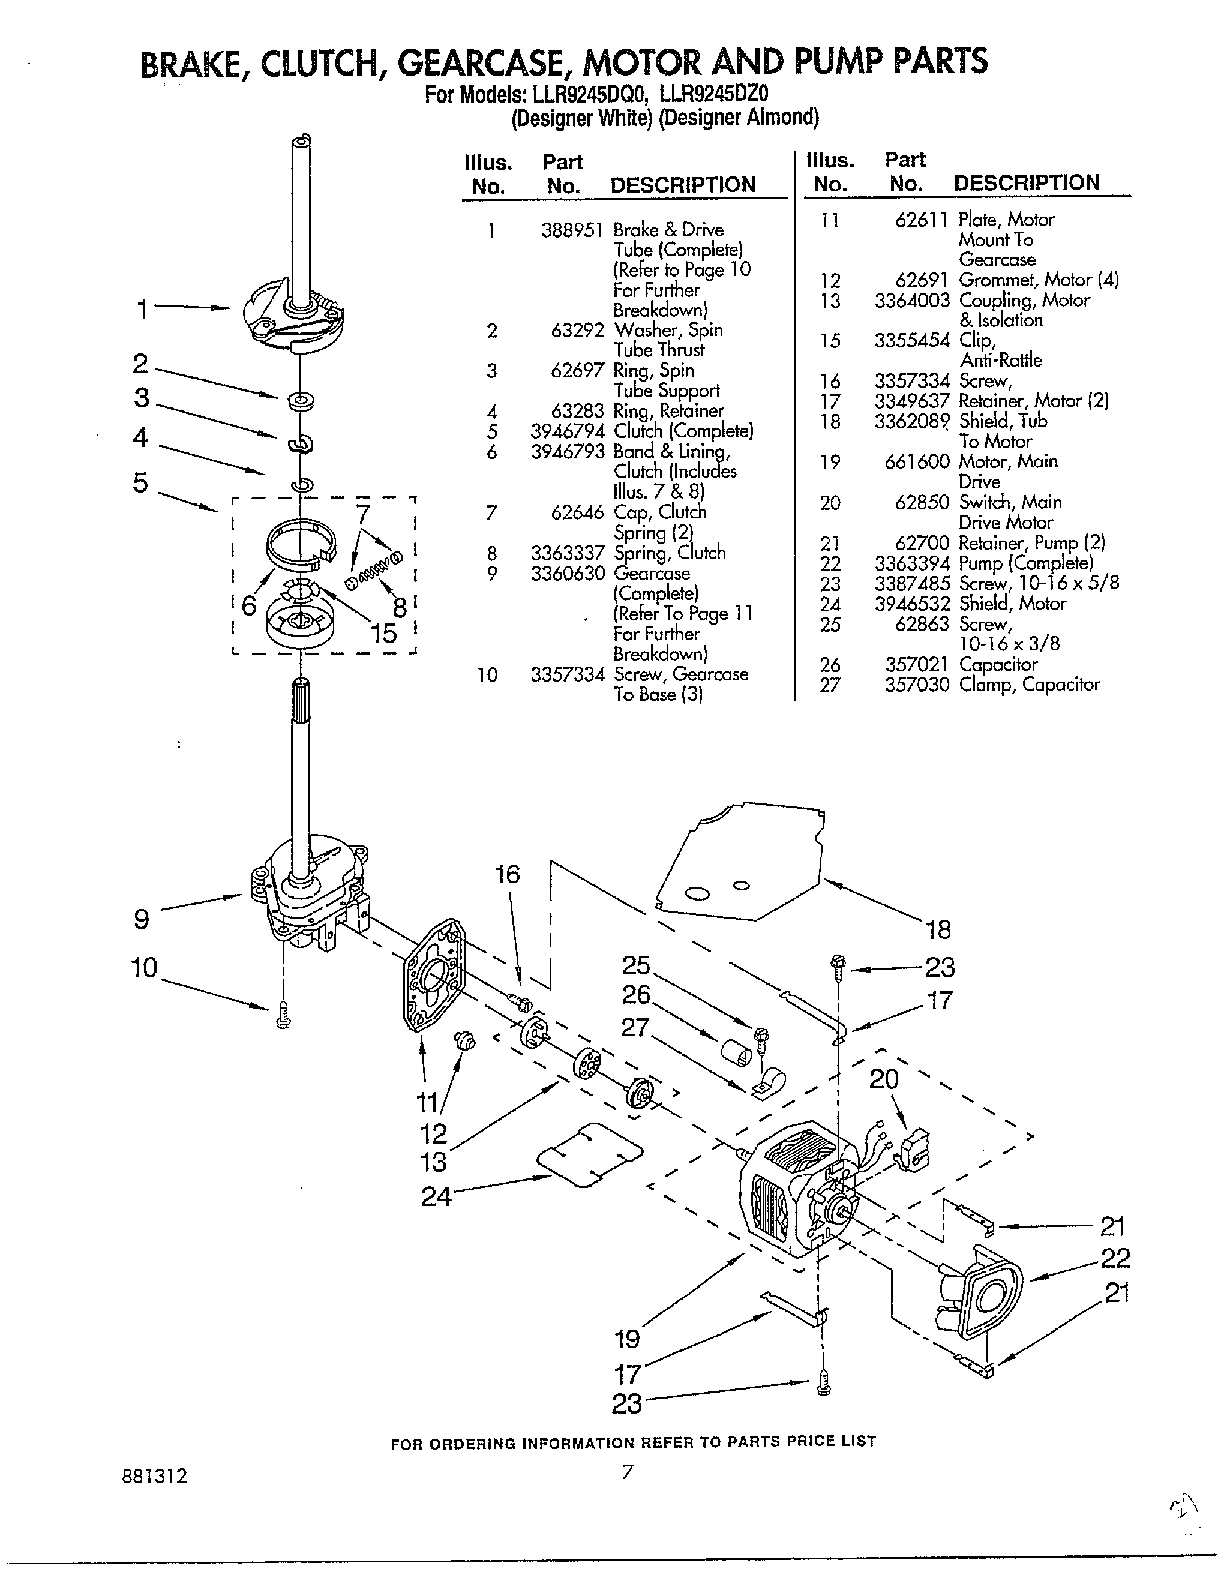 hight resolution of whirlpool llr9245dqo brake clutch gearcase motor and pump diagram